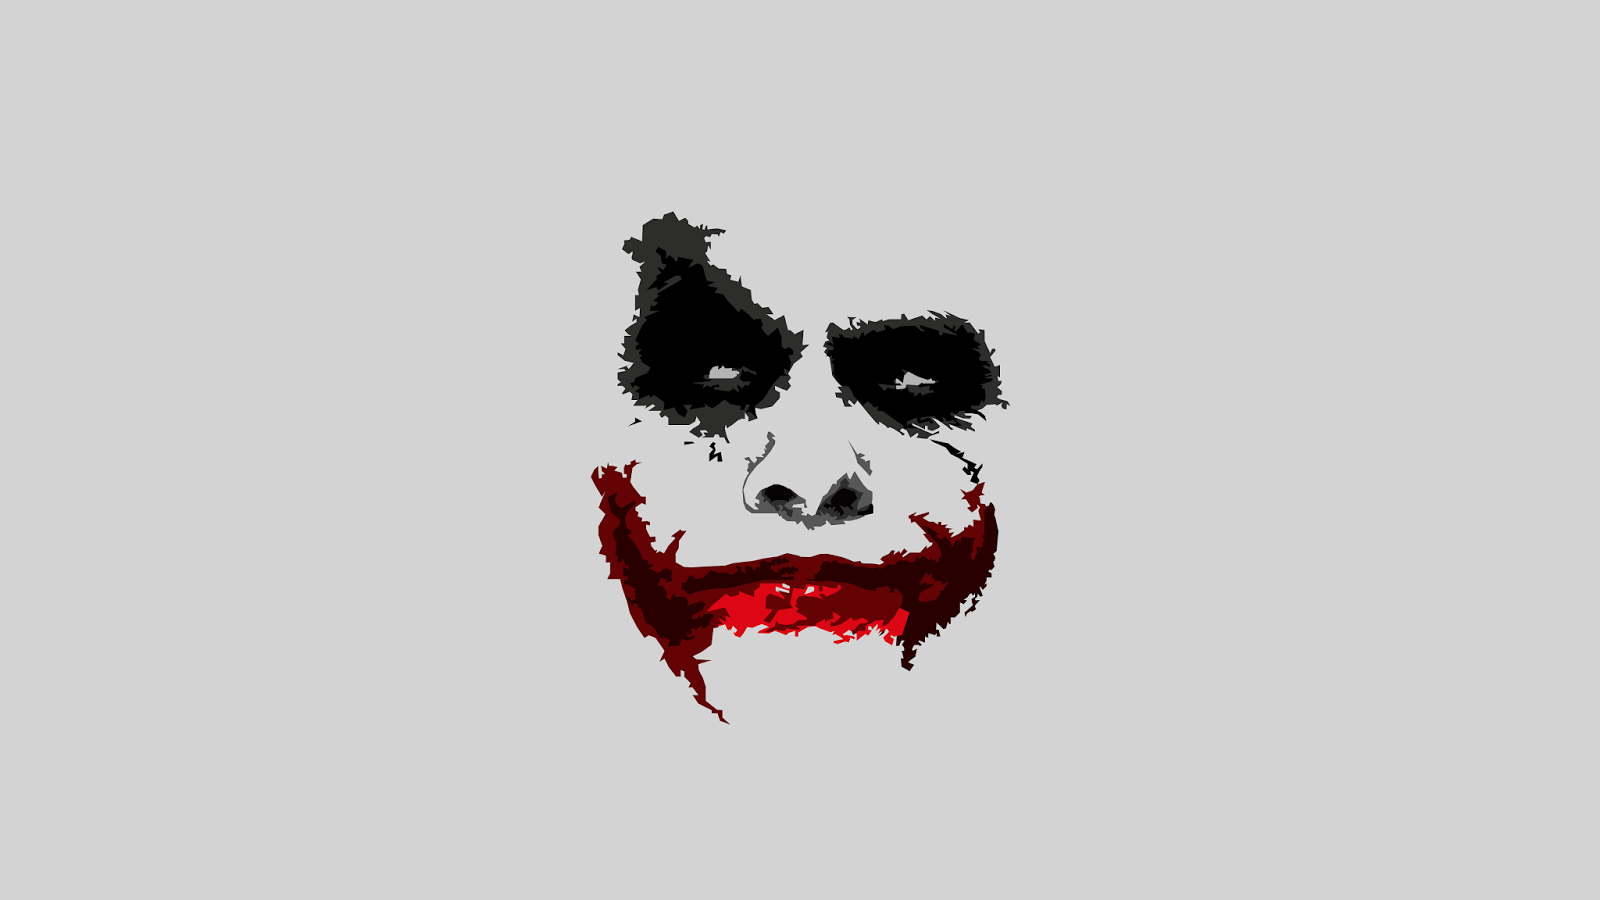 Ls 3d Cartoon Art Wallpaper Top16 Cool Guys Joker Skulls Anonymous Wallpapers